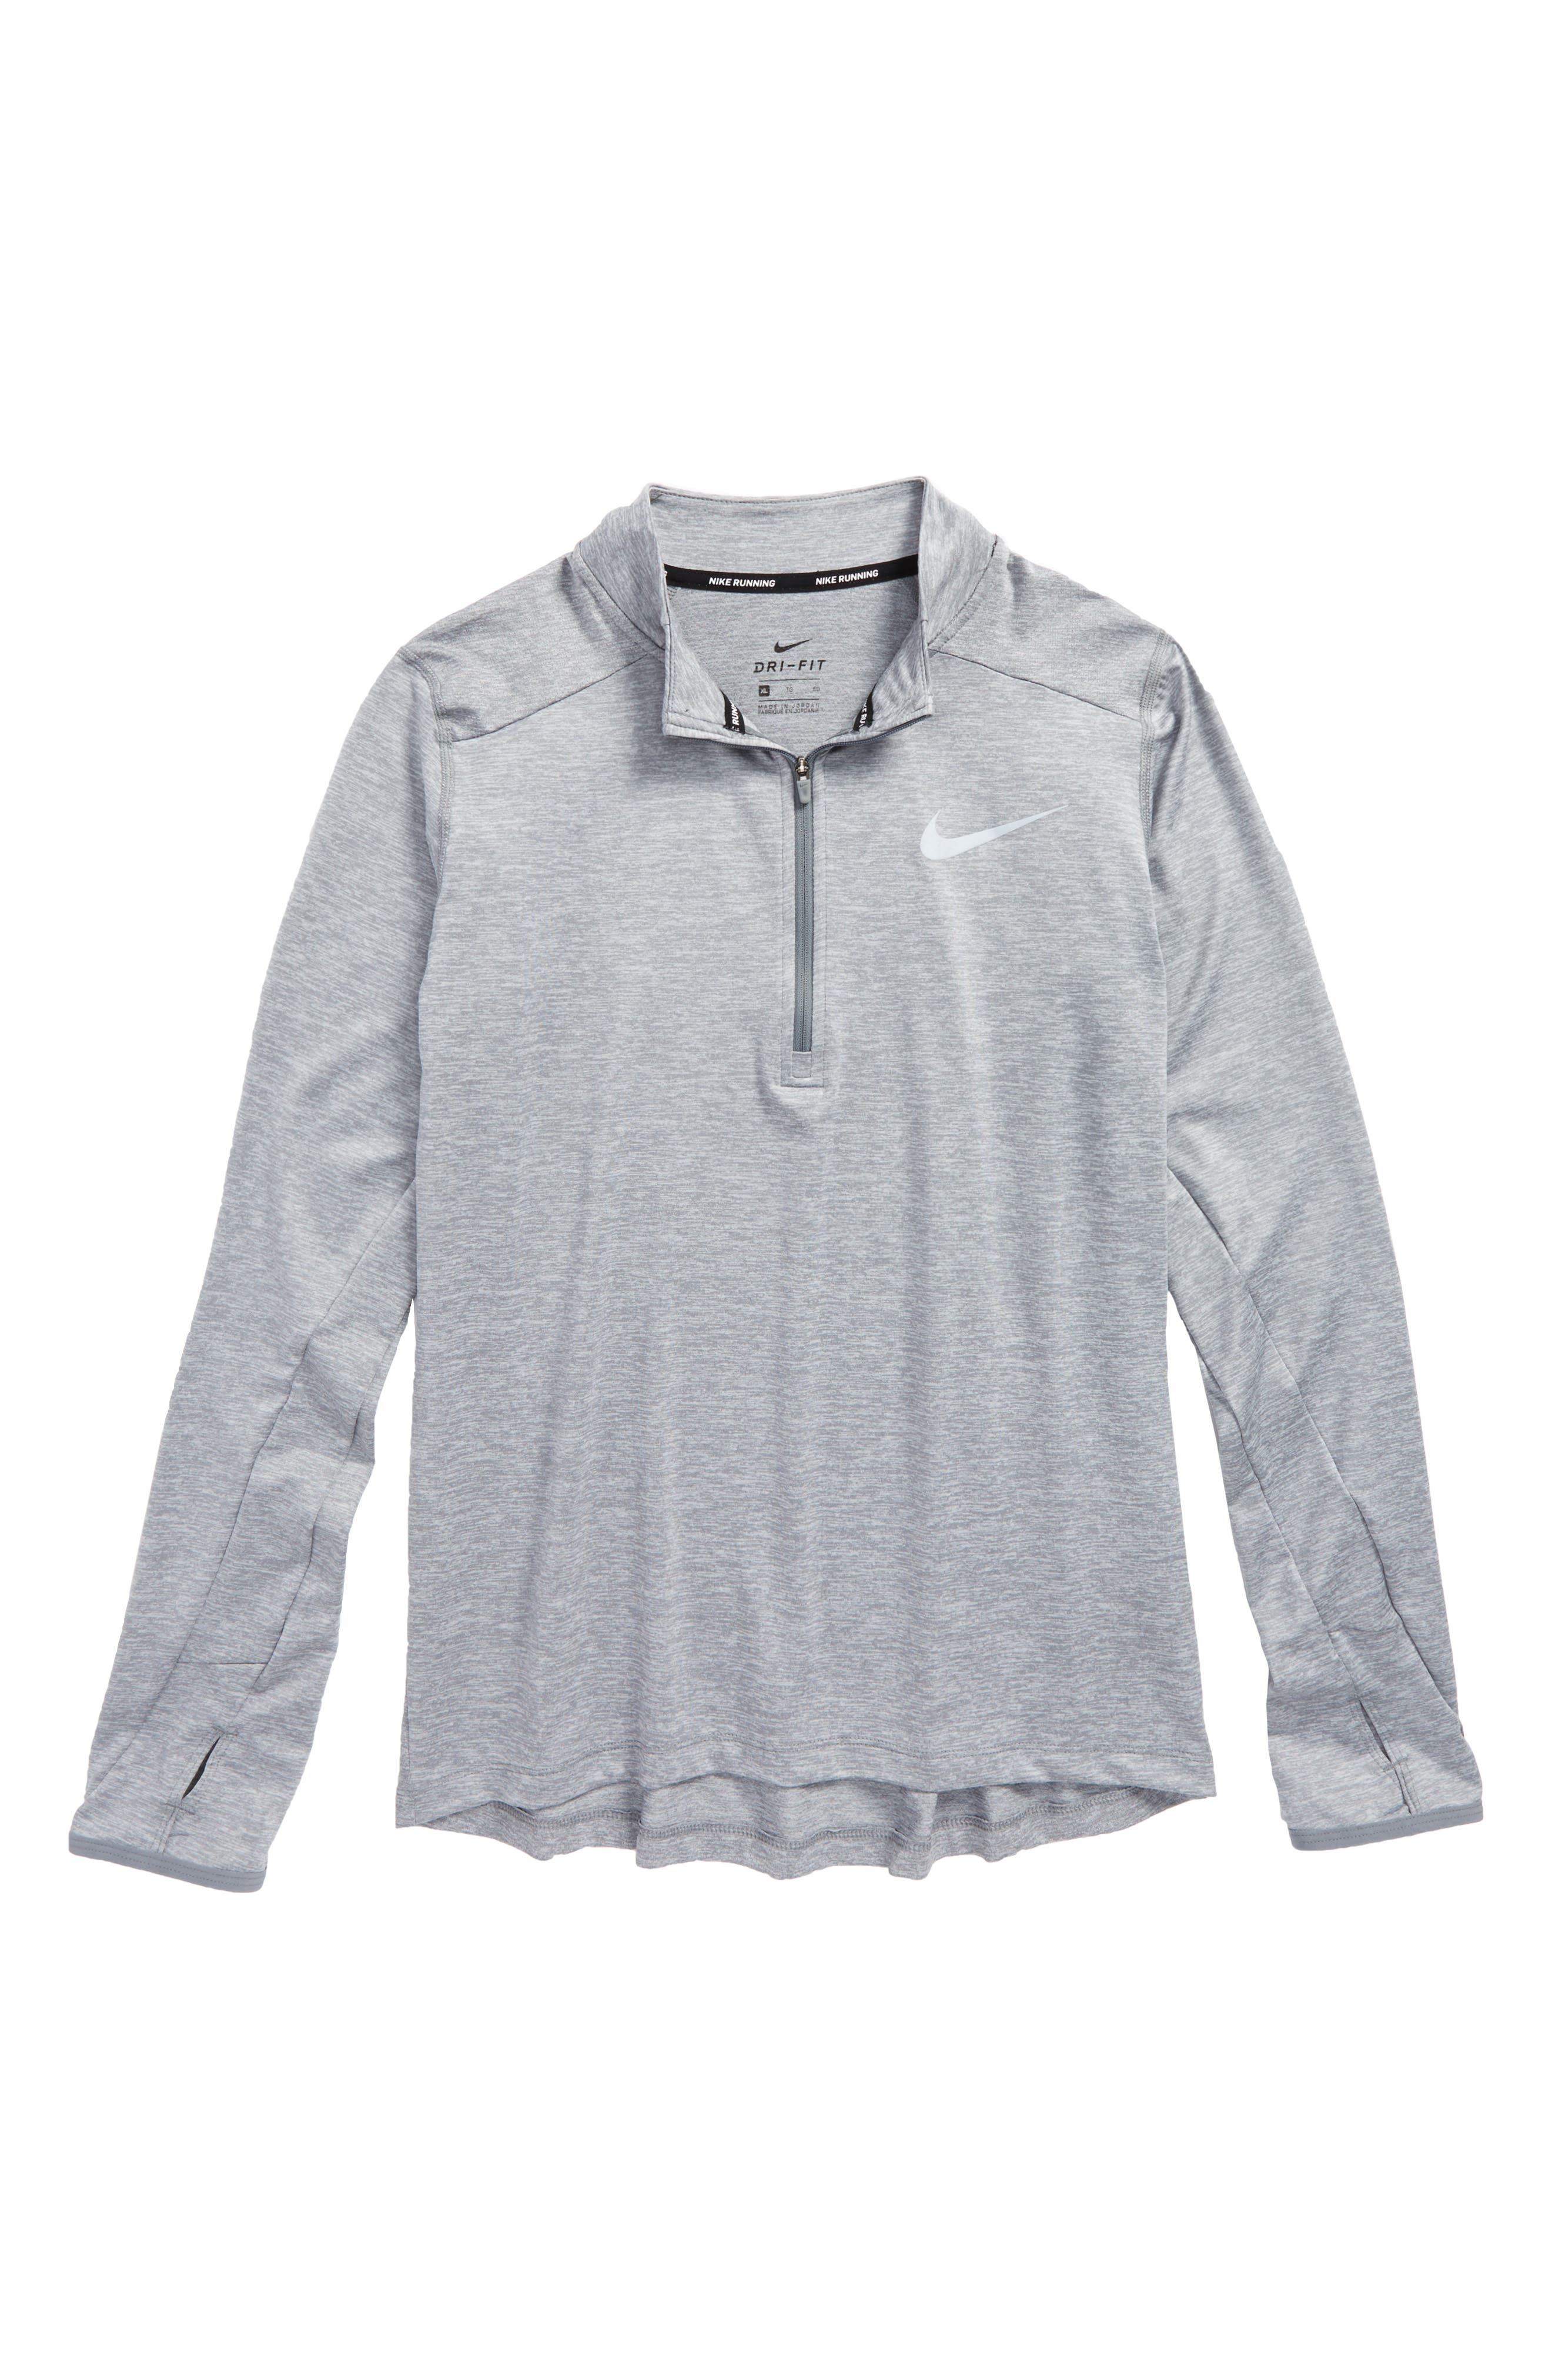 Alternate Image 1 Selected - Nike Dry Element Quarter Zip Top (Little Boys & Big Boys)